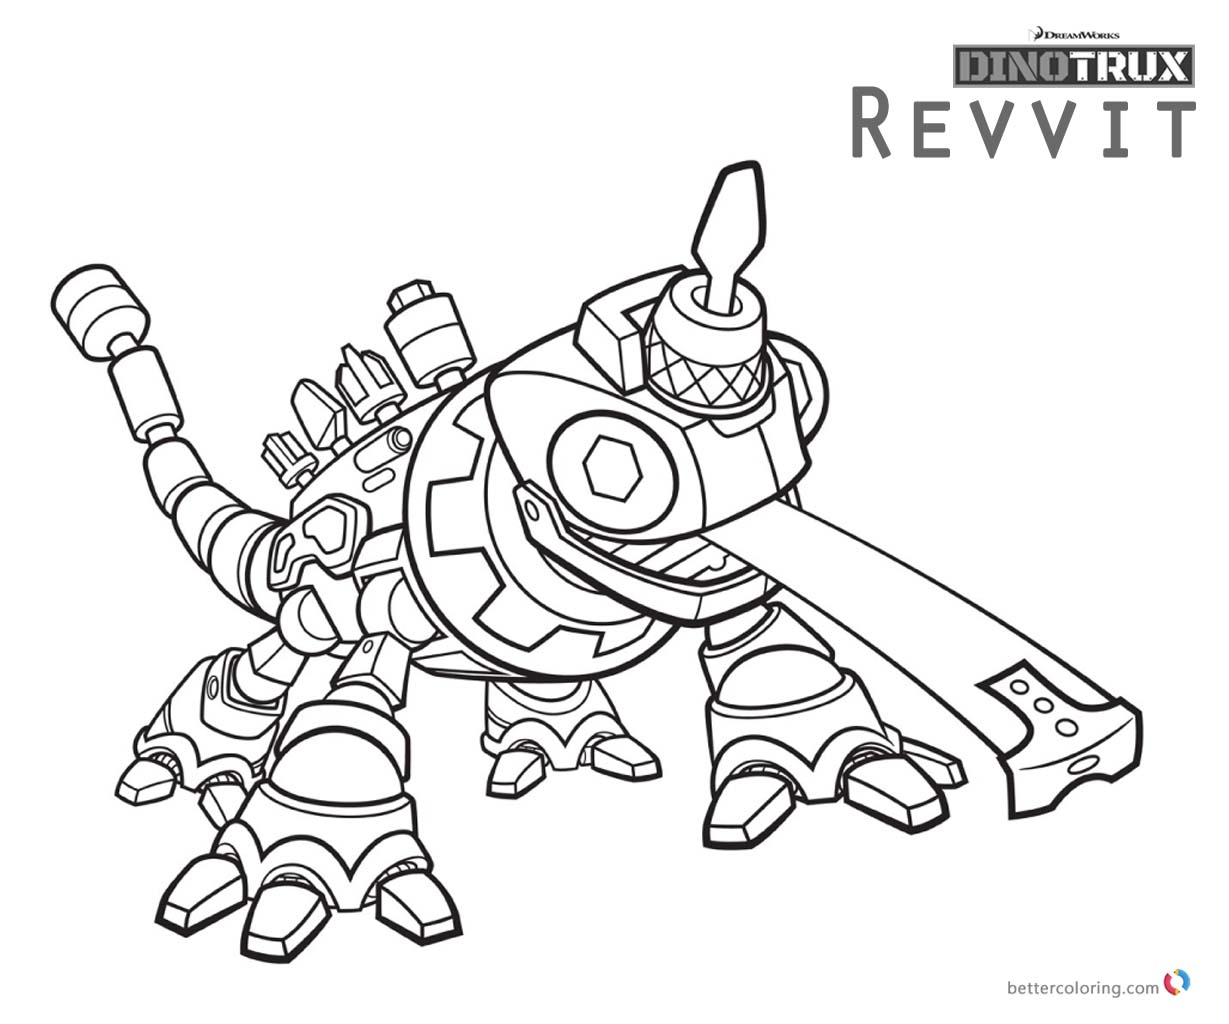 Dinotrux Revvit coloring pages printable